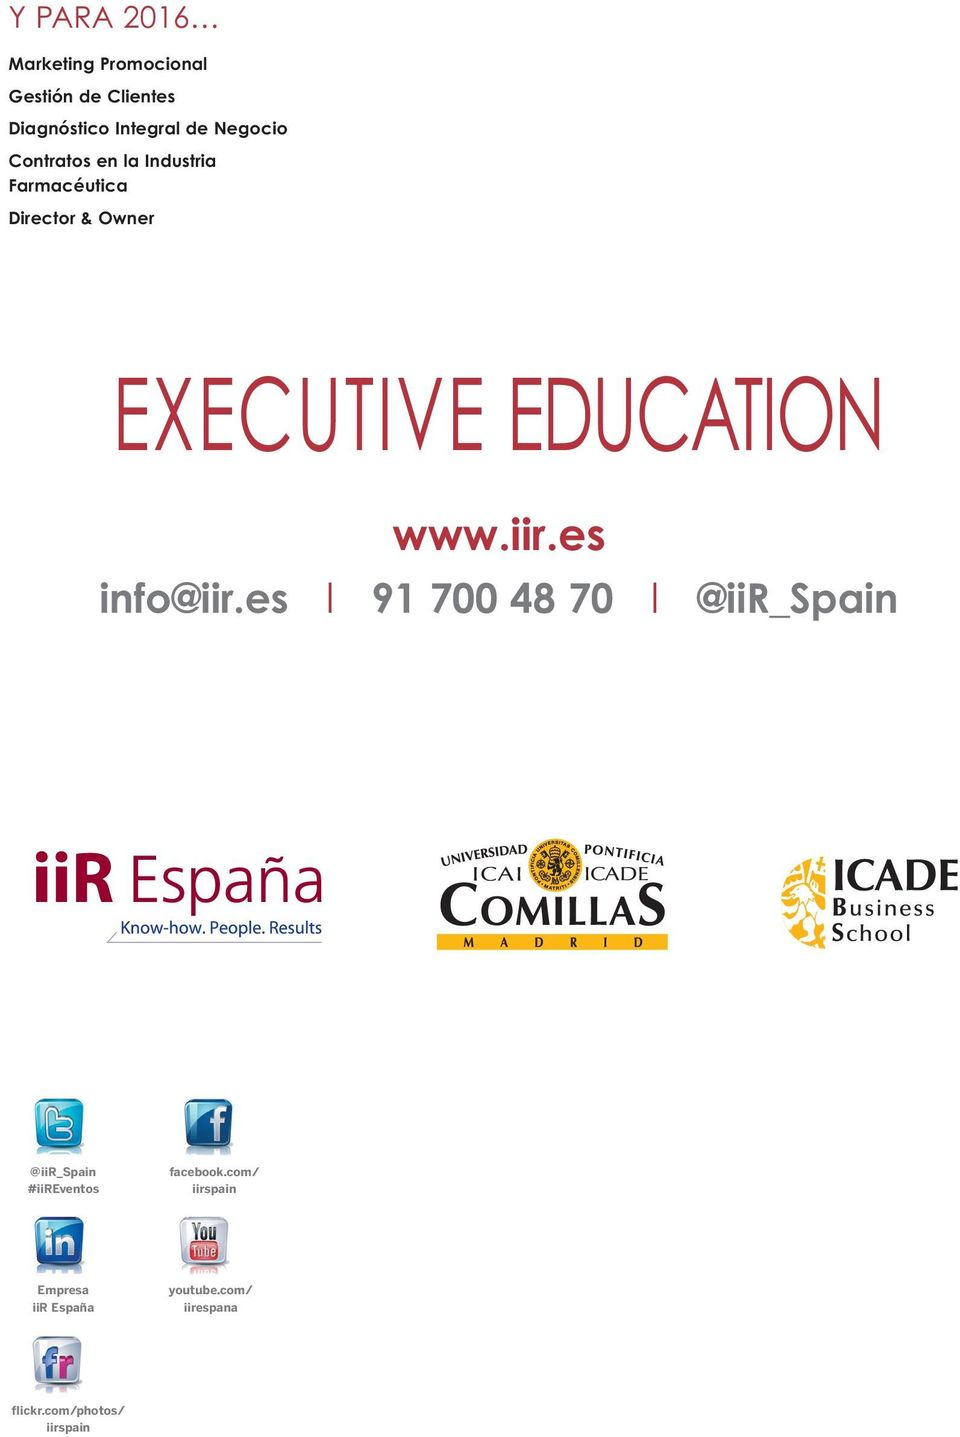 EDUCATION www.iir.es info@iir.